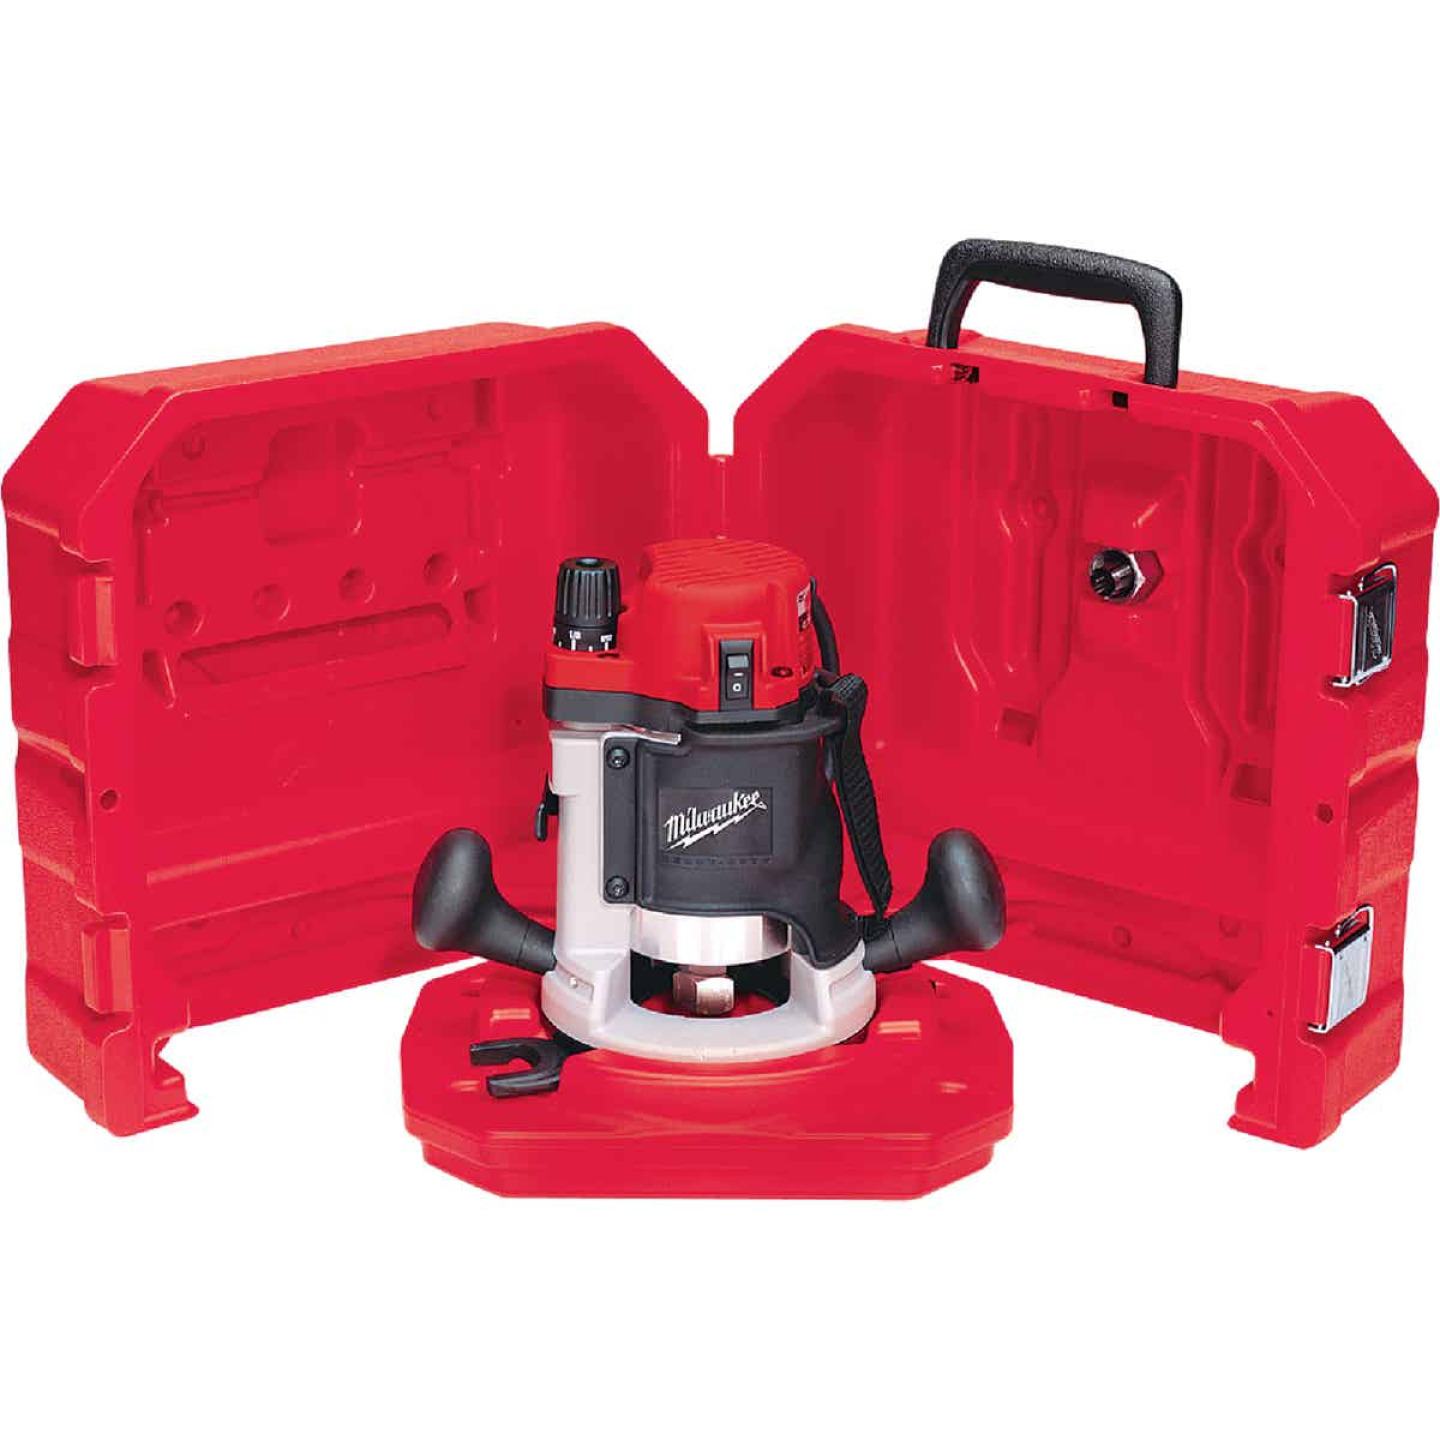 Milwaukee 11.0A 24,000 rpm Router Kit Image 2